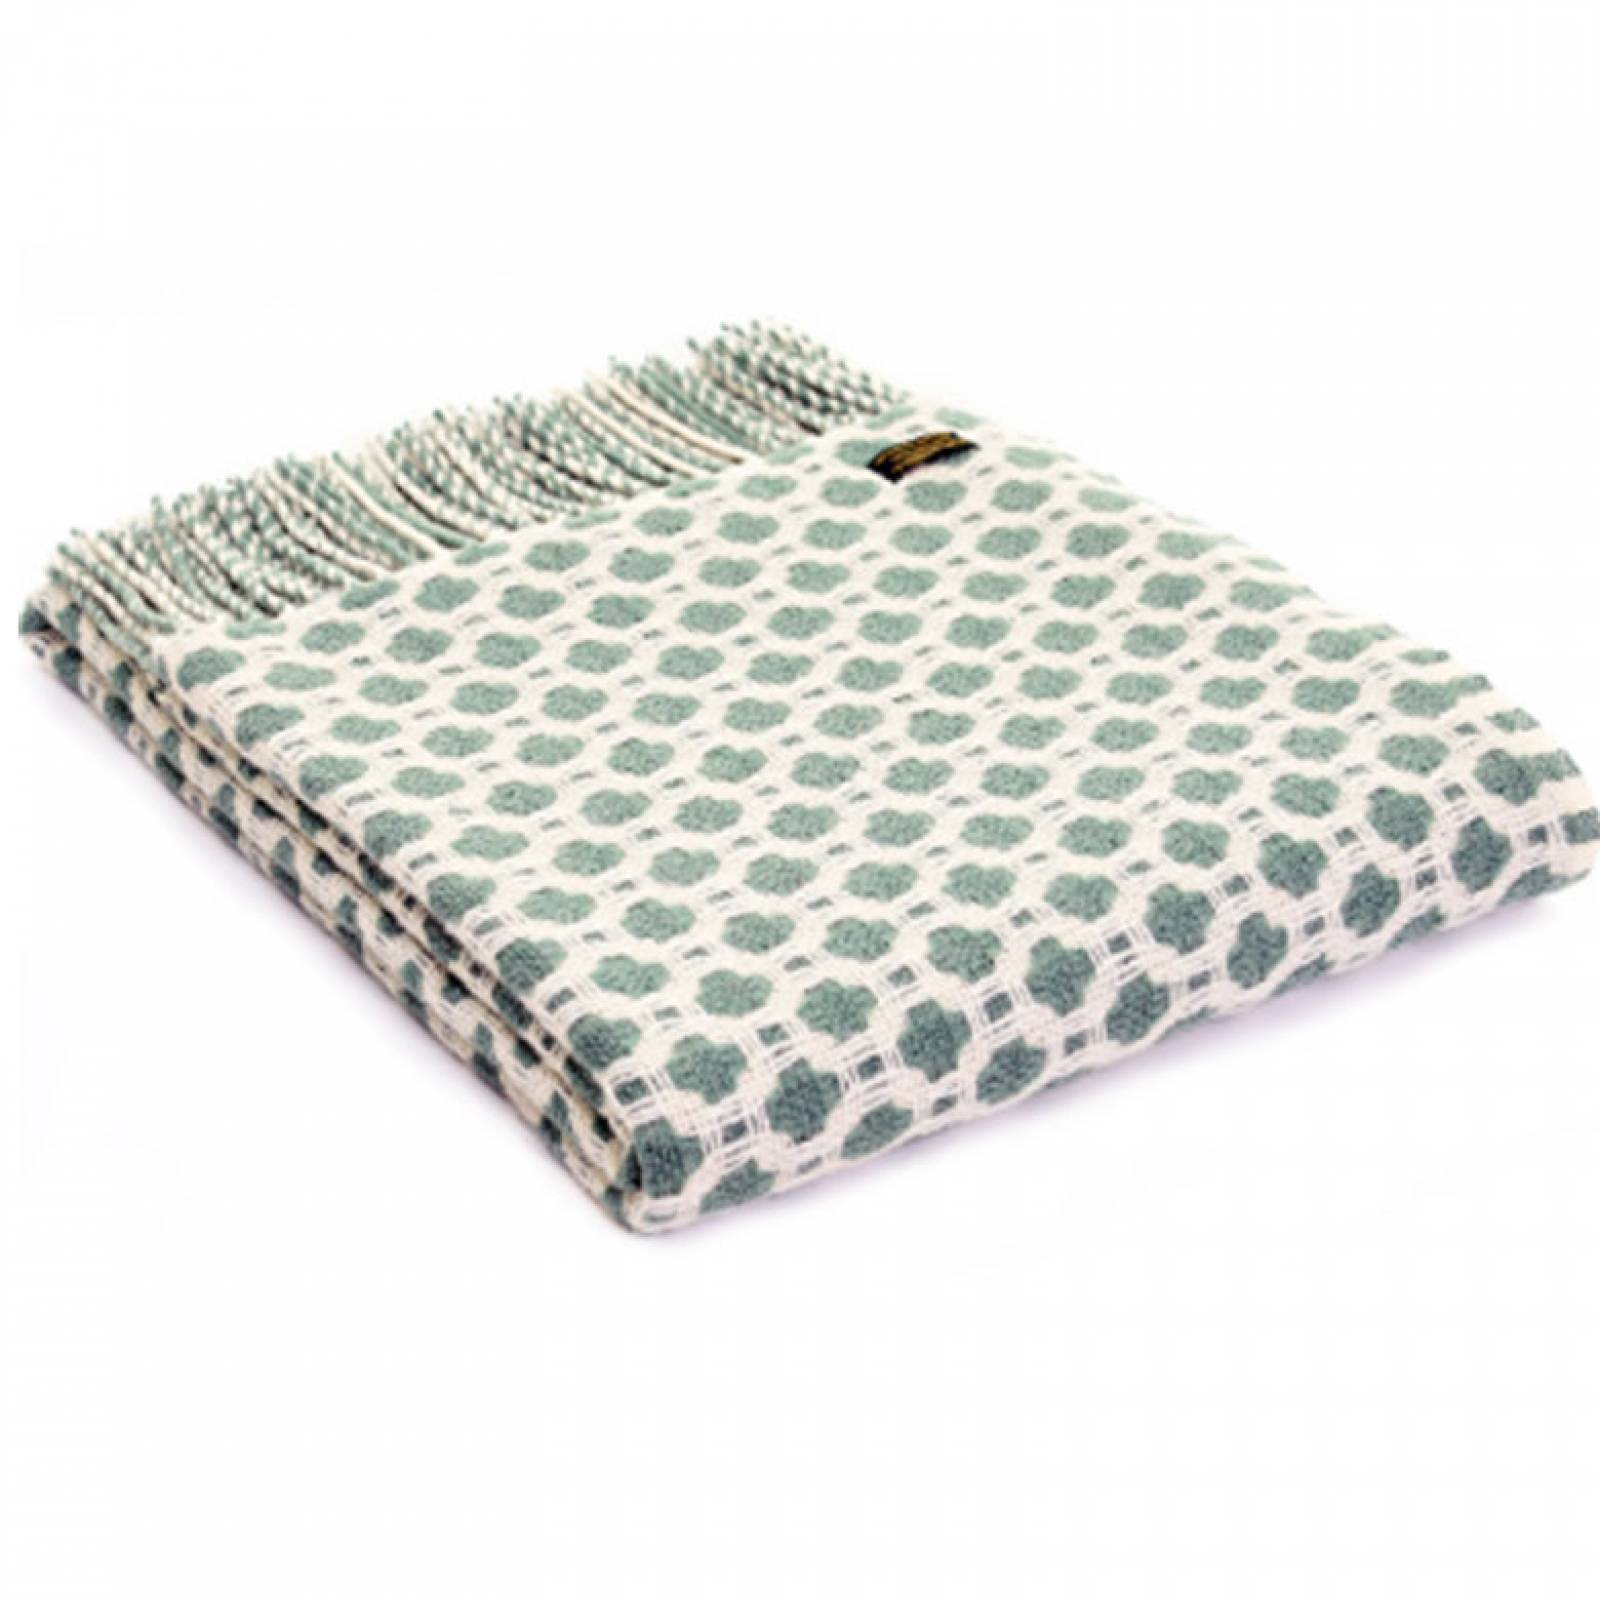 Sea Green Crossroads Throw Blanket 150x183cm